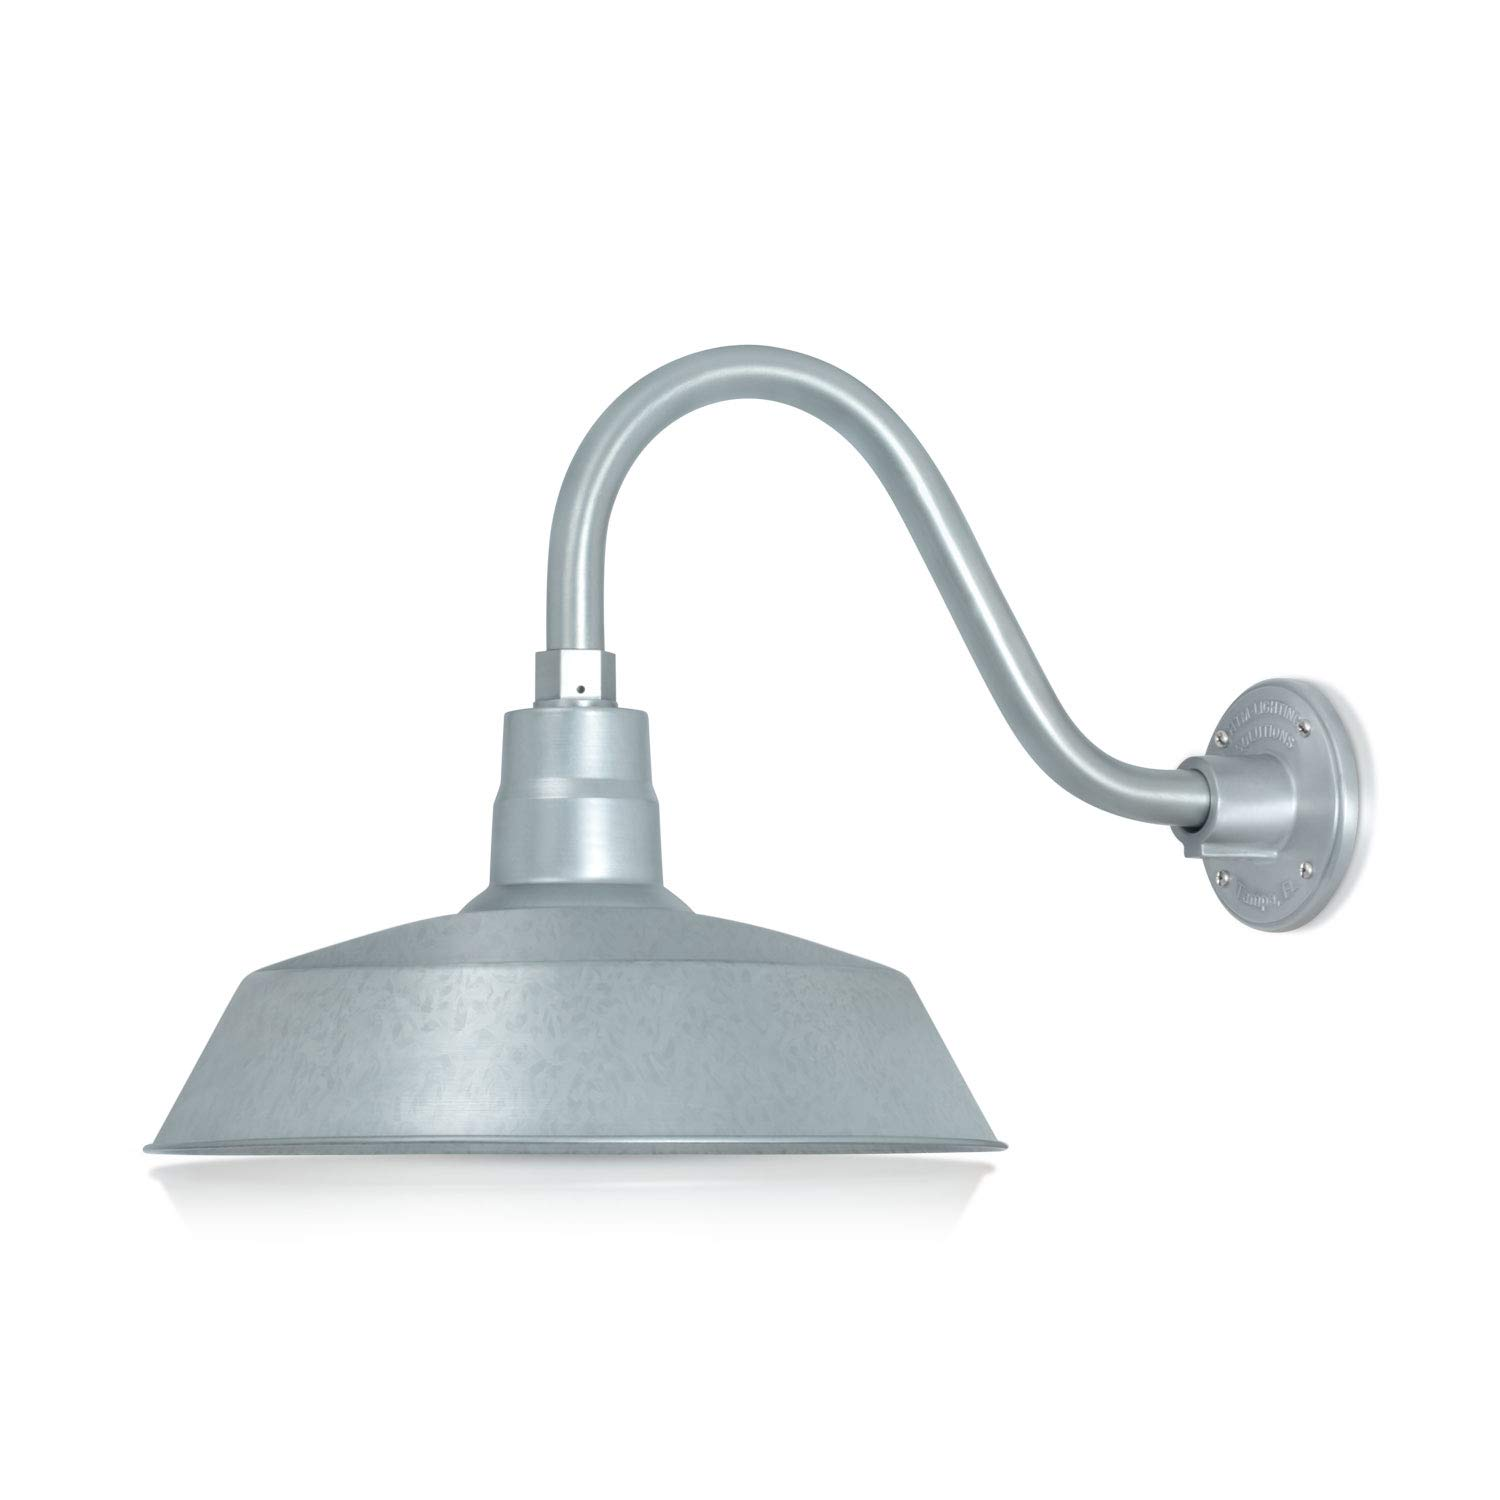 14in. Galvanized Finish Outdoor Gooseneck Barn Light Fixture with 14.5 in. Long Extension Arm - Wall Sconce Farmhouse, Vintage, Antique Style - UL Listed - 9W 900lm A19 LED Bulb (5000K Cool White)